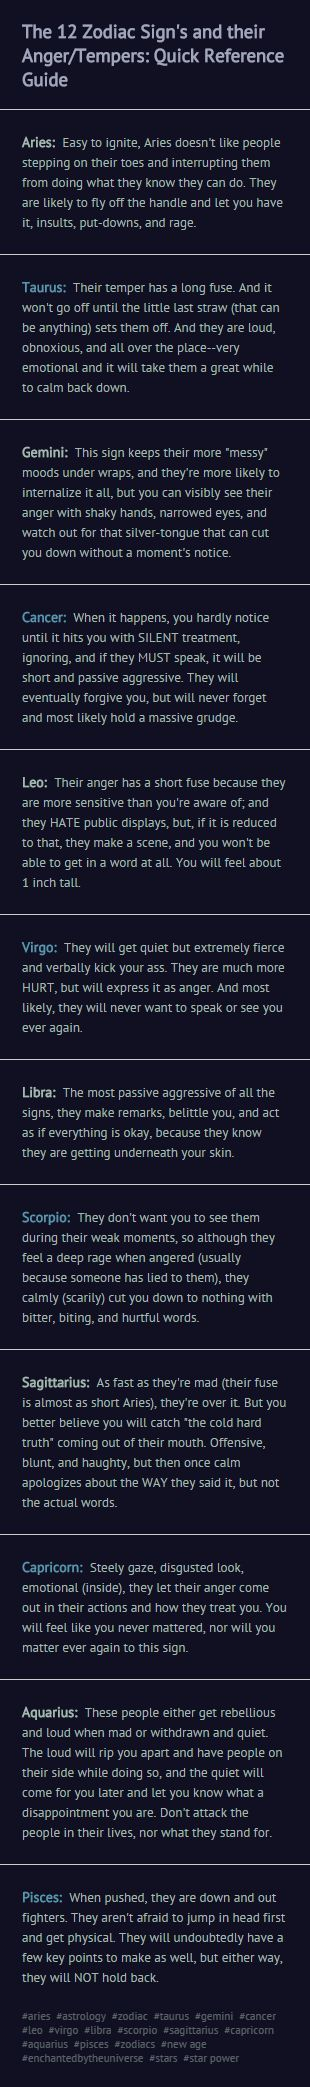 So true!: Zodiac Signs, Anger Tempers, Cancer Horoscope Quotes, Gemini And Sagittarius, Astrology Signs Capricorn, Zodiac Quote, Astrology Gemini